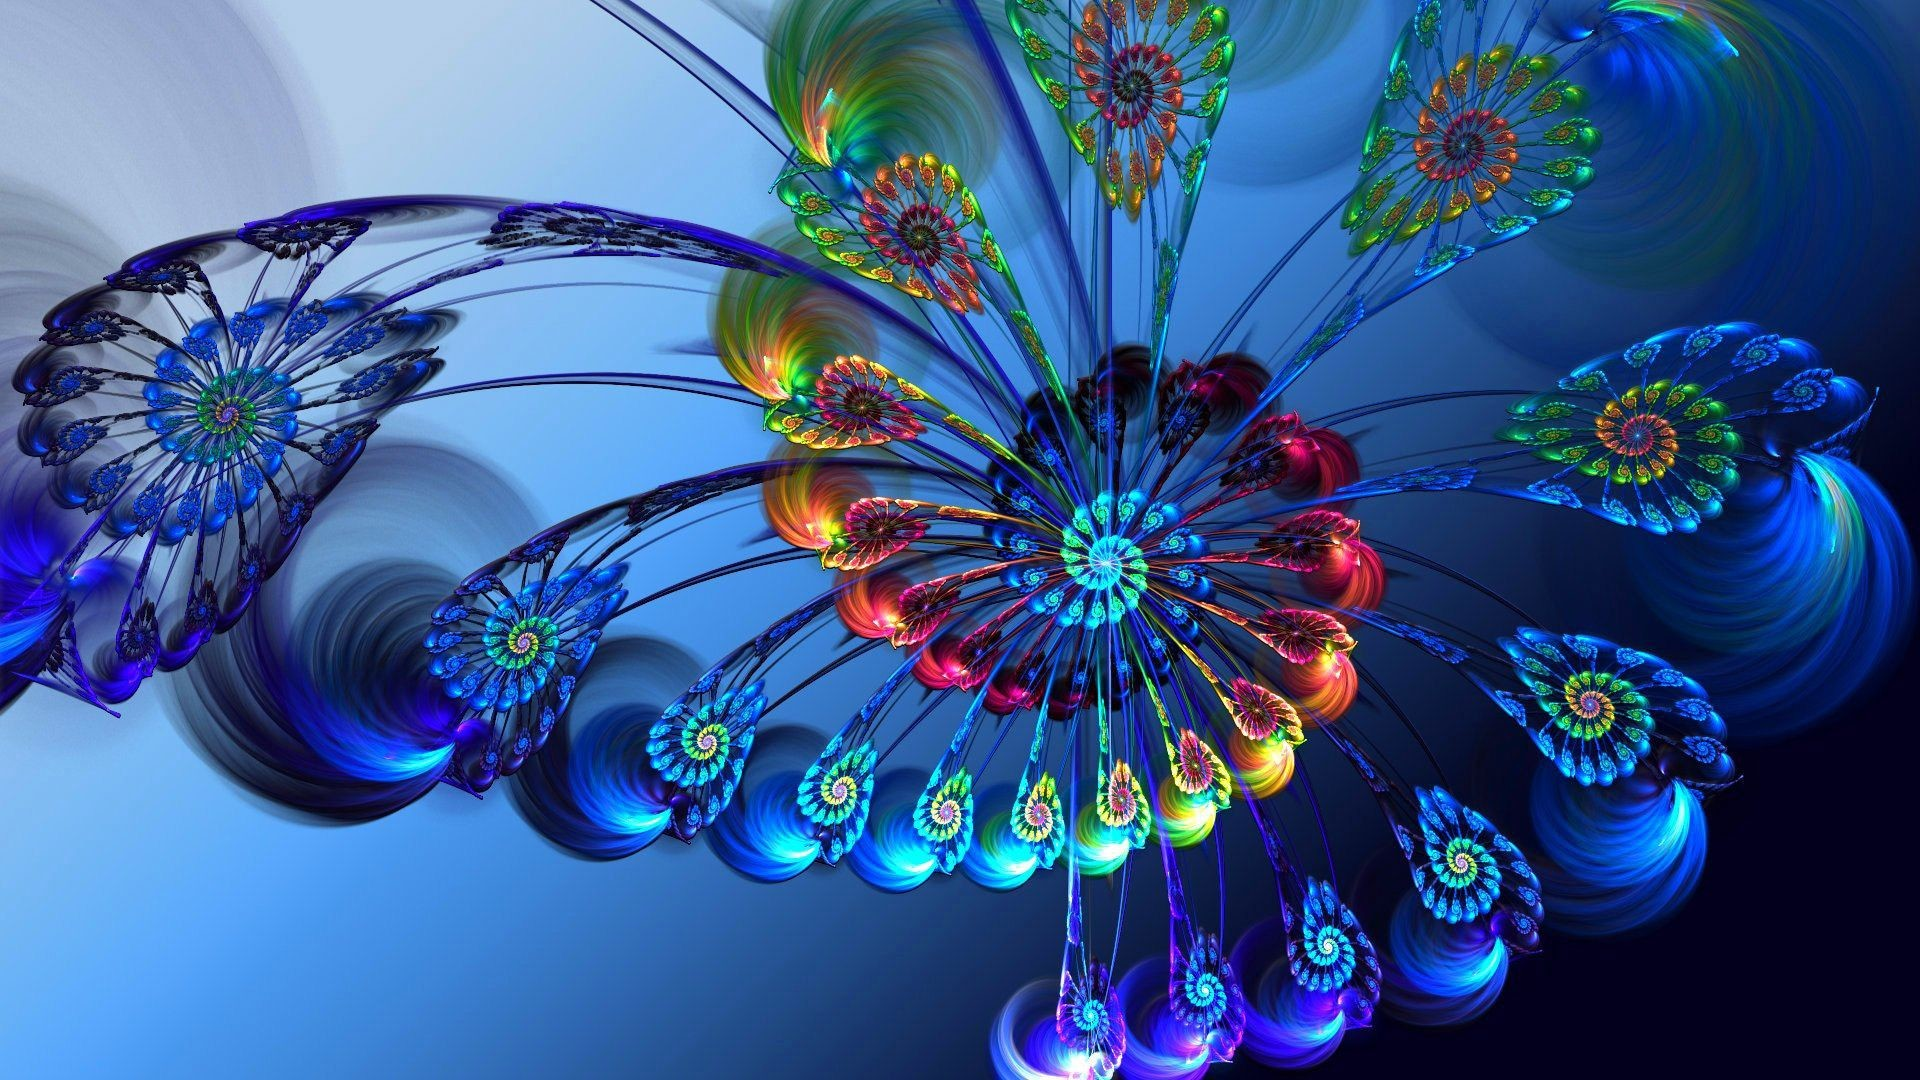 78 Hd Fractal Wallpapers on WallpaperPlay 1920x1080